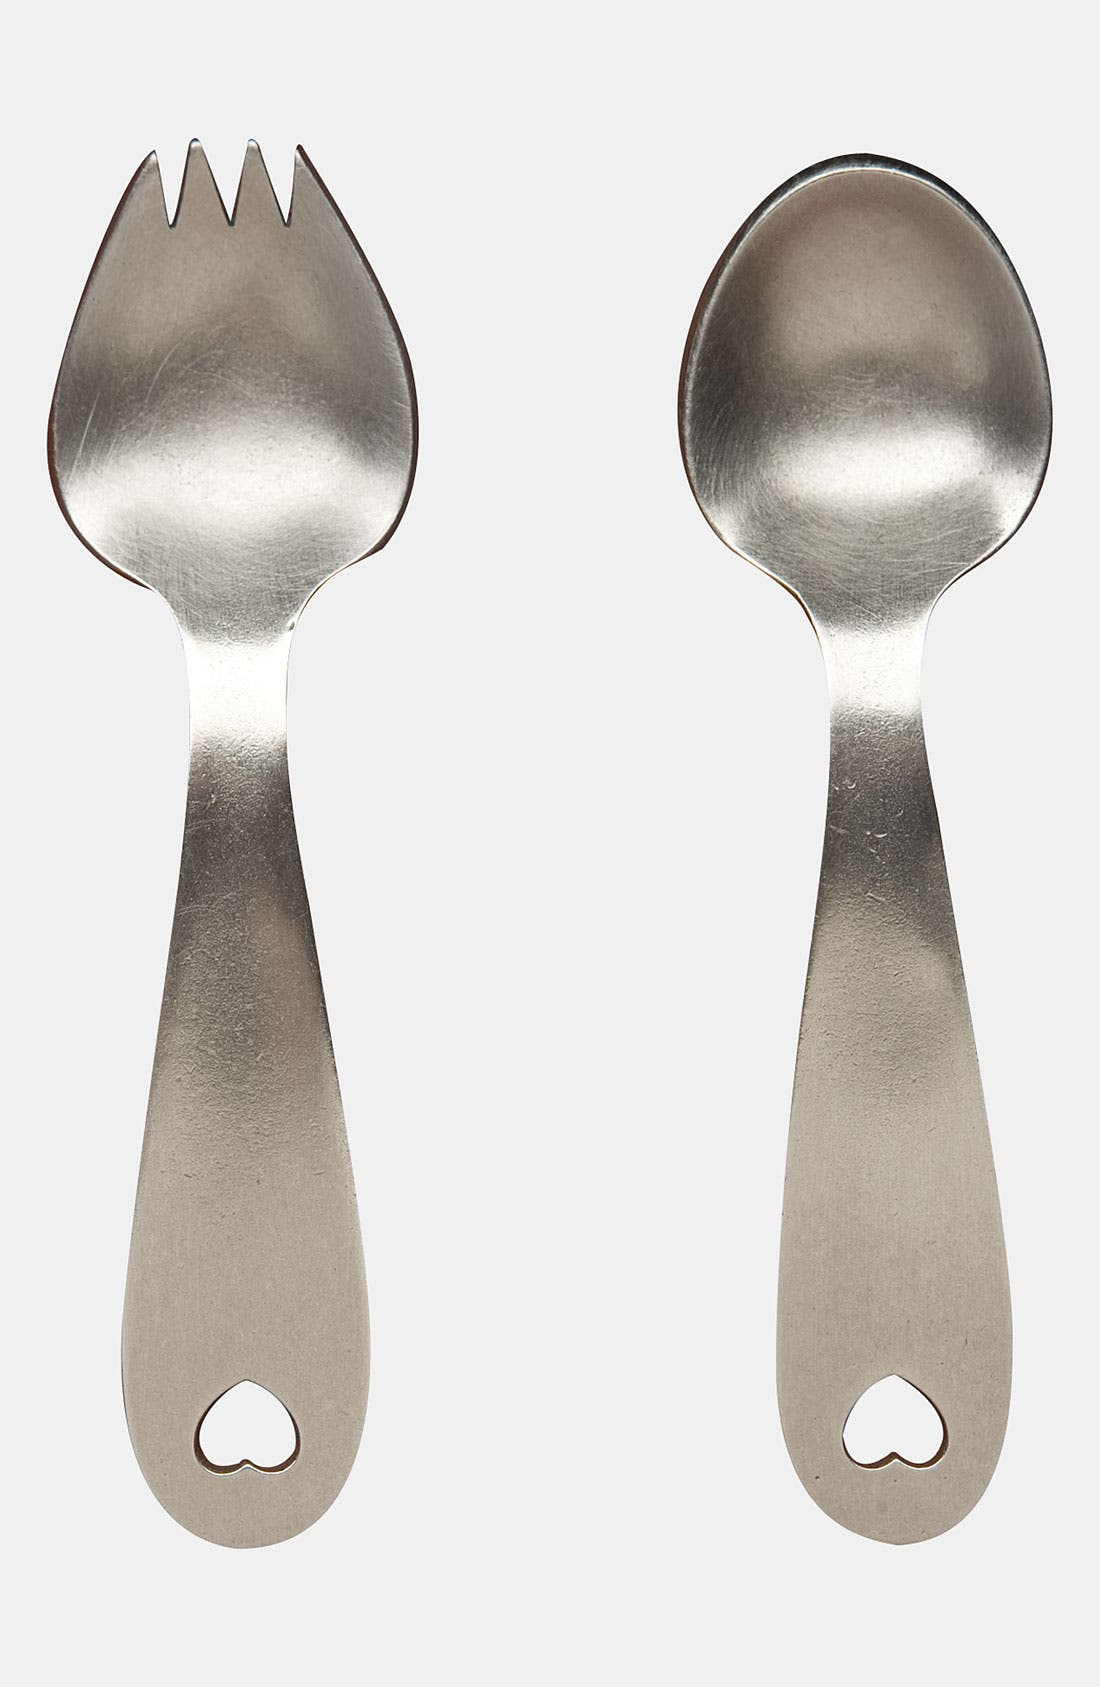 Alternate Image 1 Selected - Beehive Kitchenware 'Heart' Keepsake Spoon & Fork